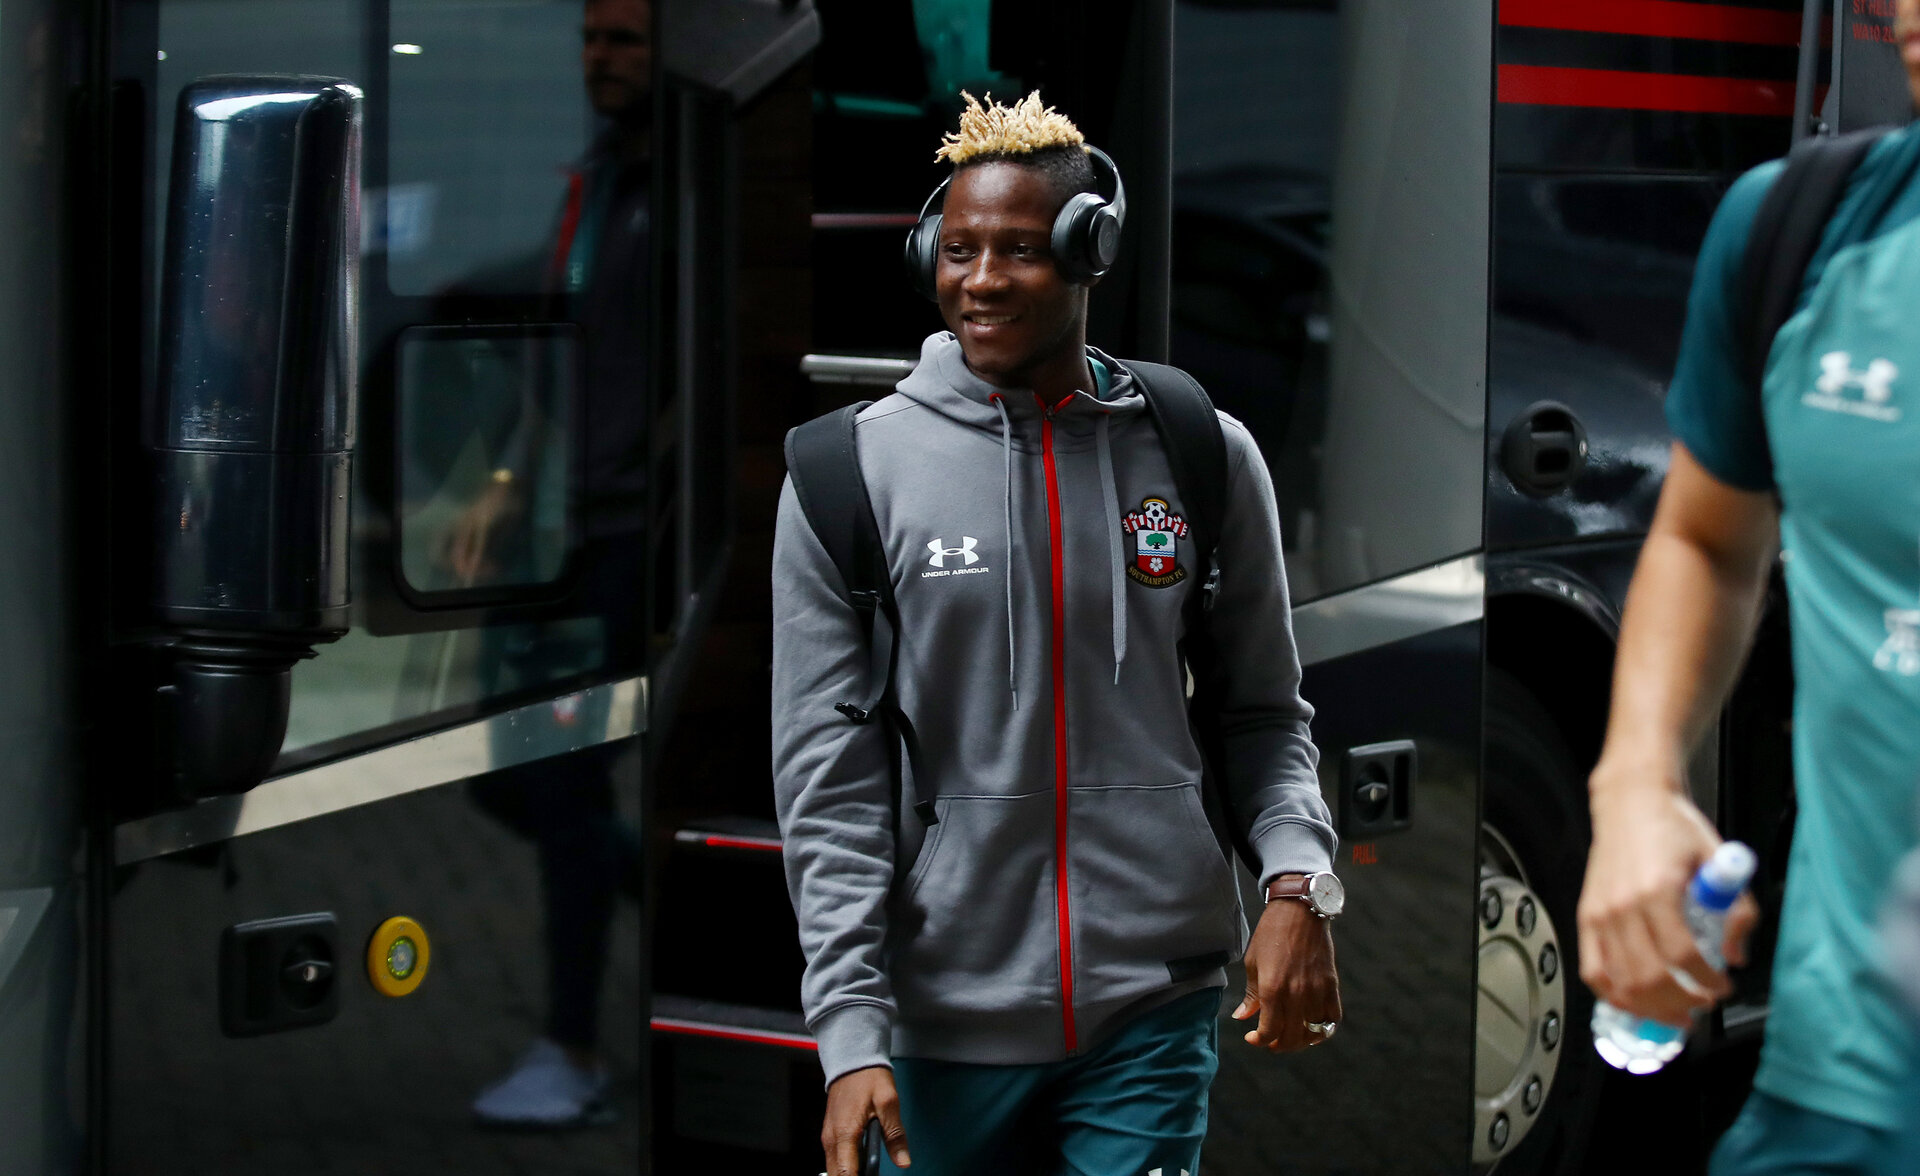 ROTTERDAM, NETHERLANDS - JULY 28: Moussa Djenepo of Southampton arrives ahead of the pre season friendly match between Feyenoord and Southampton FC at De Kuip on July 28, 2019 in Rotterdam, Netherlands. (Photo by Matt Watson/Southampton FC via Getty Images)